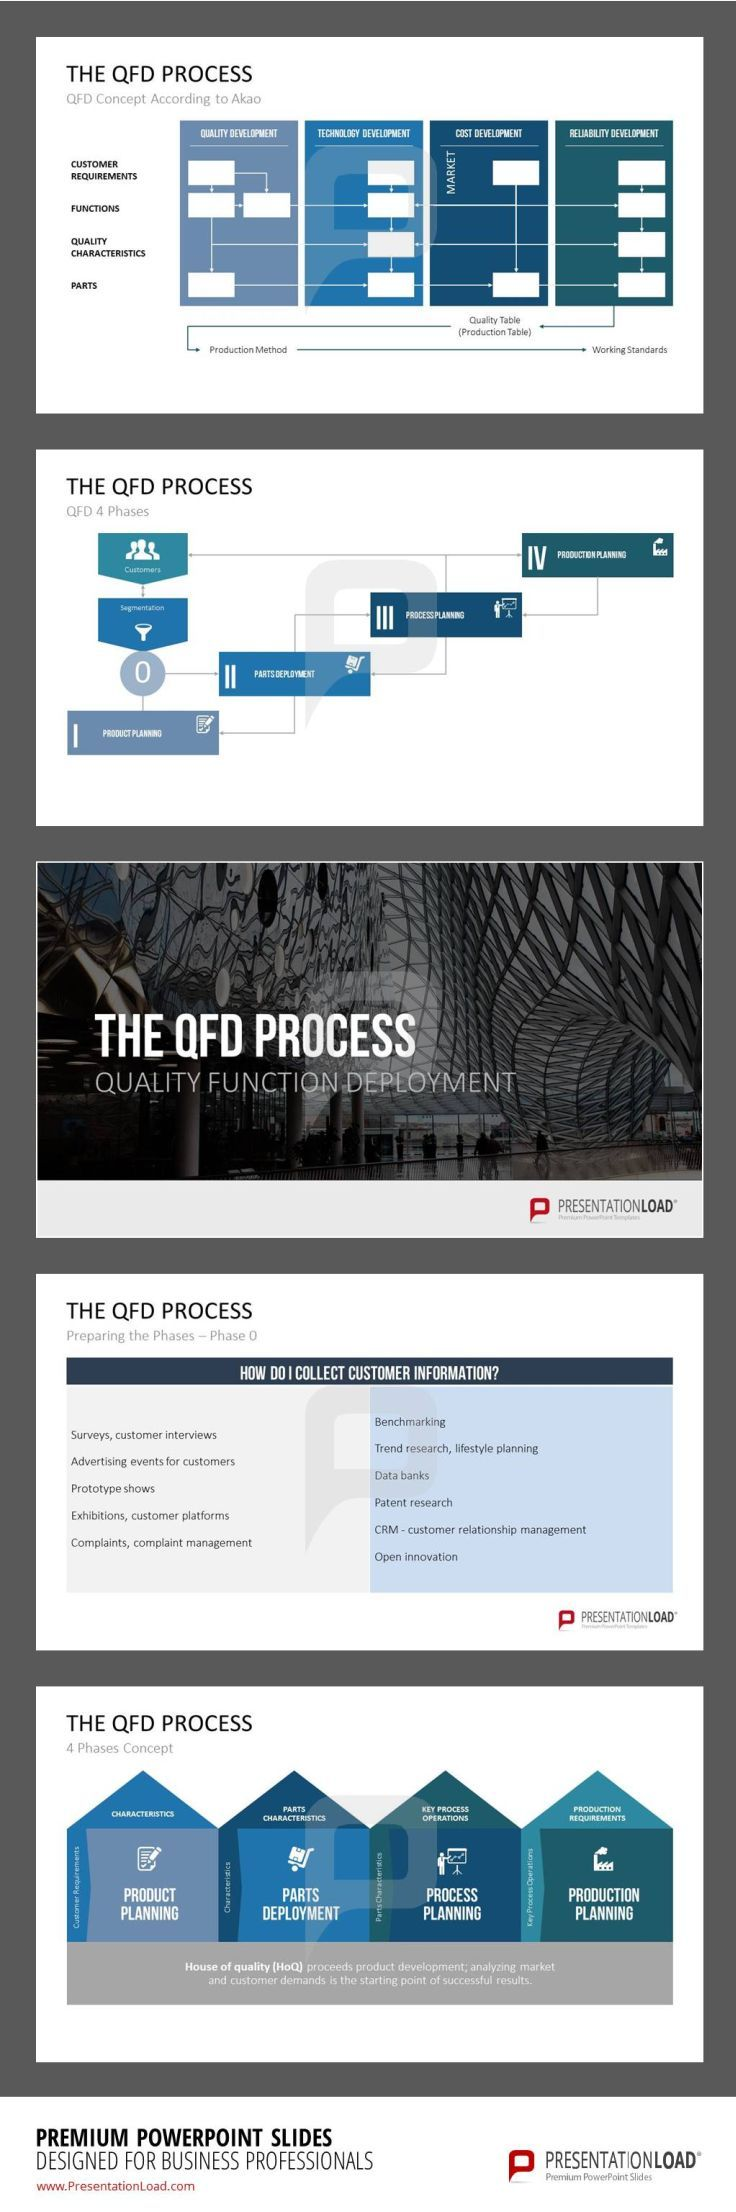 7 best QFD images on Pinterest | Art 3d, Engineers and Leadership